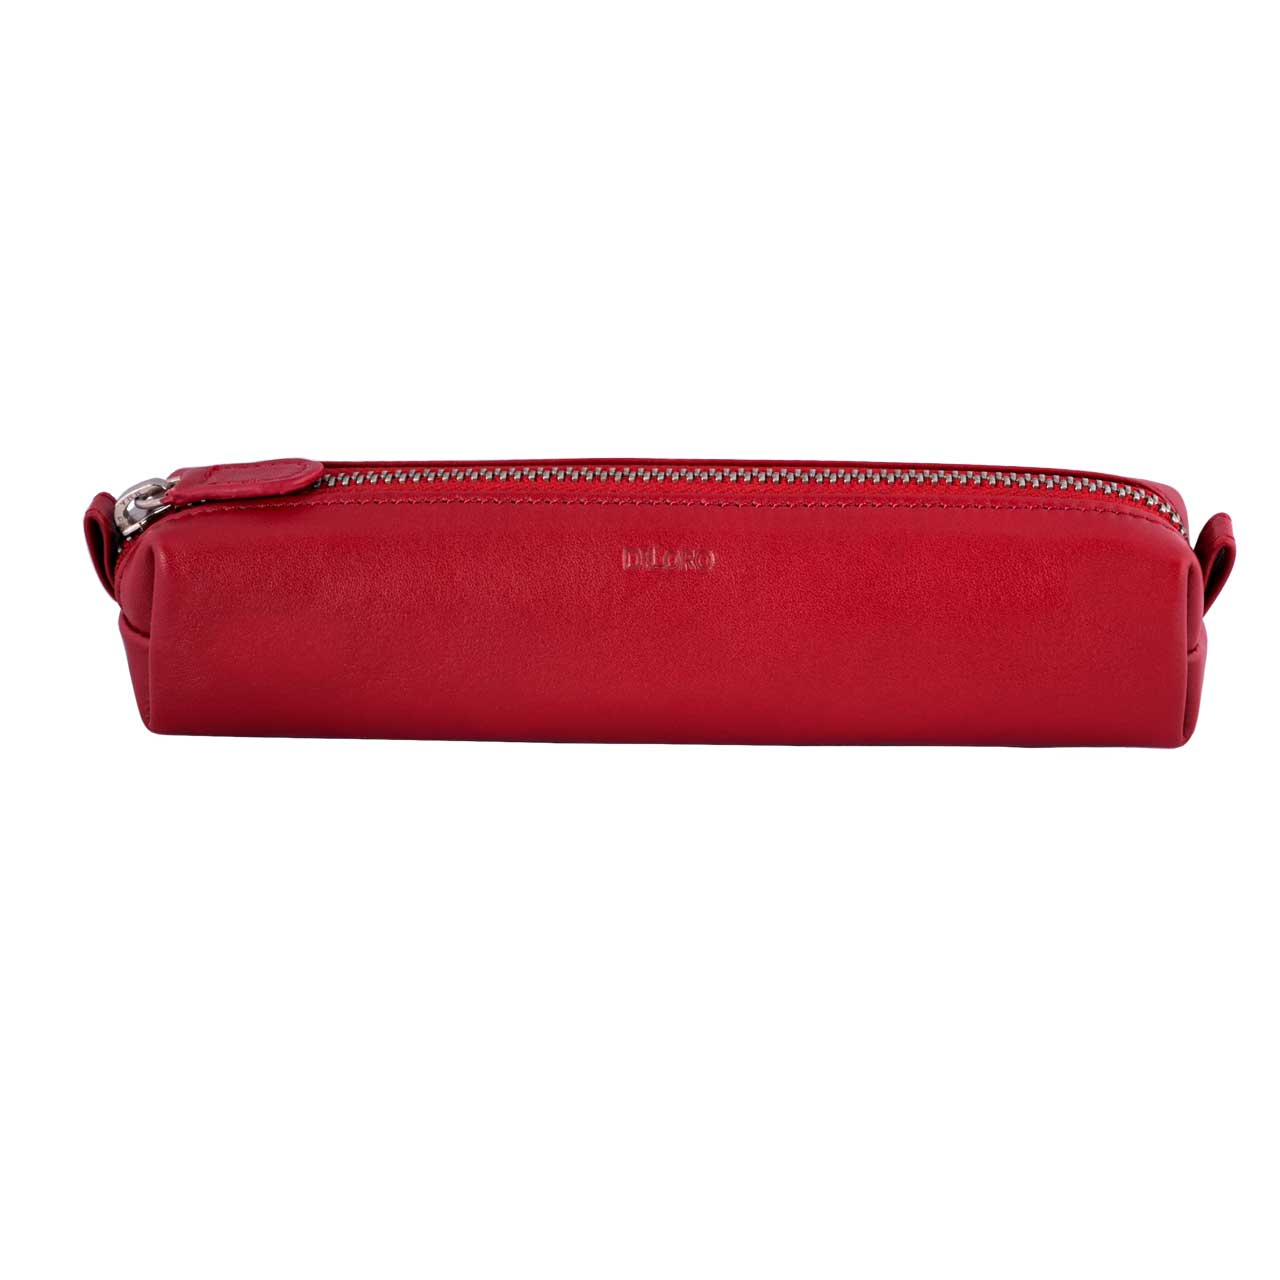 Multi-Purpose Zippered Leather Pen Pencil Case in Various Colors - Red